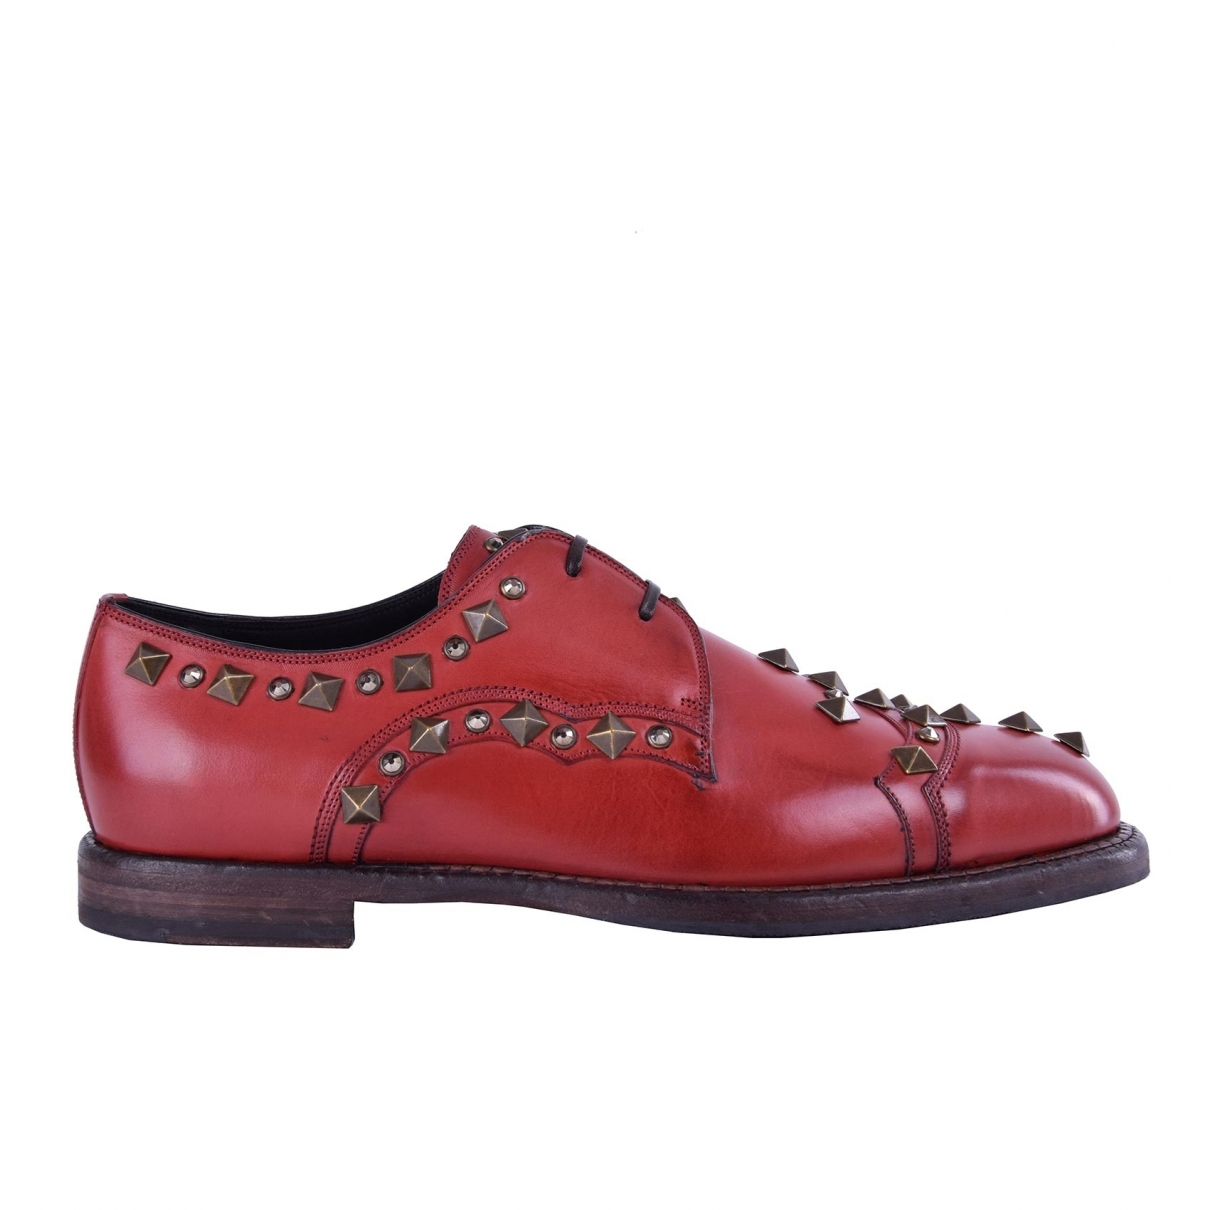 Dolce & Gabbana \N Red Leather Lace ups for Men 39.5 EU